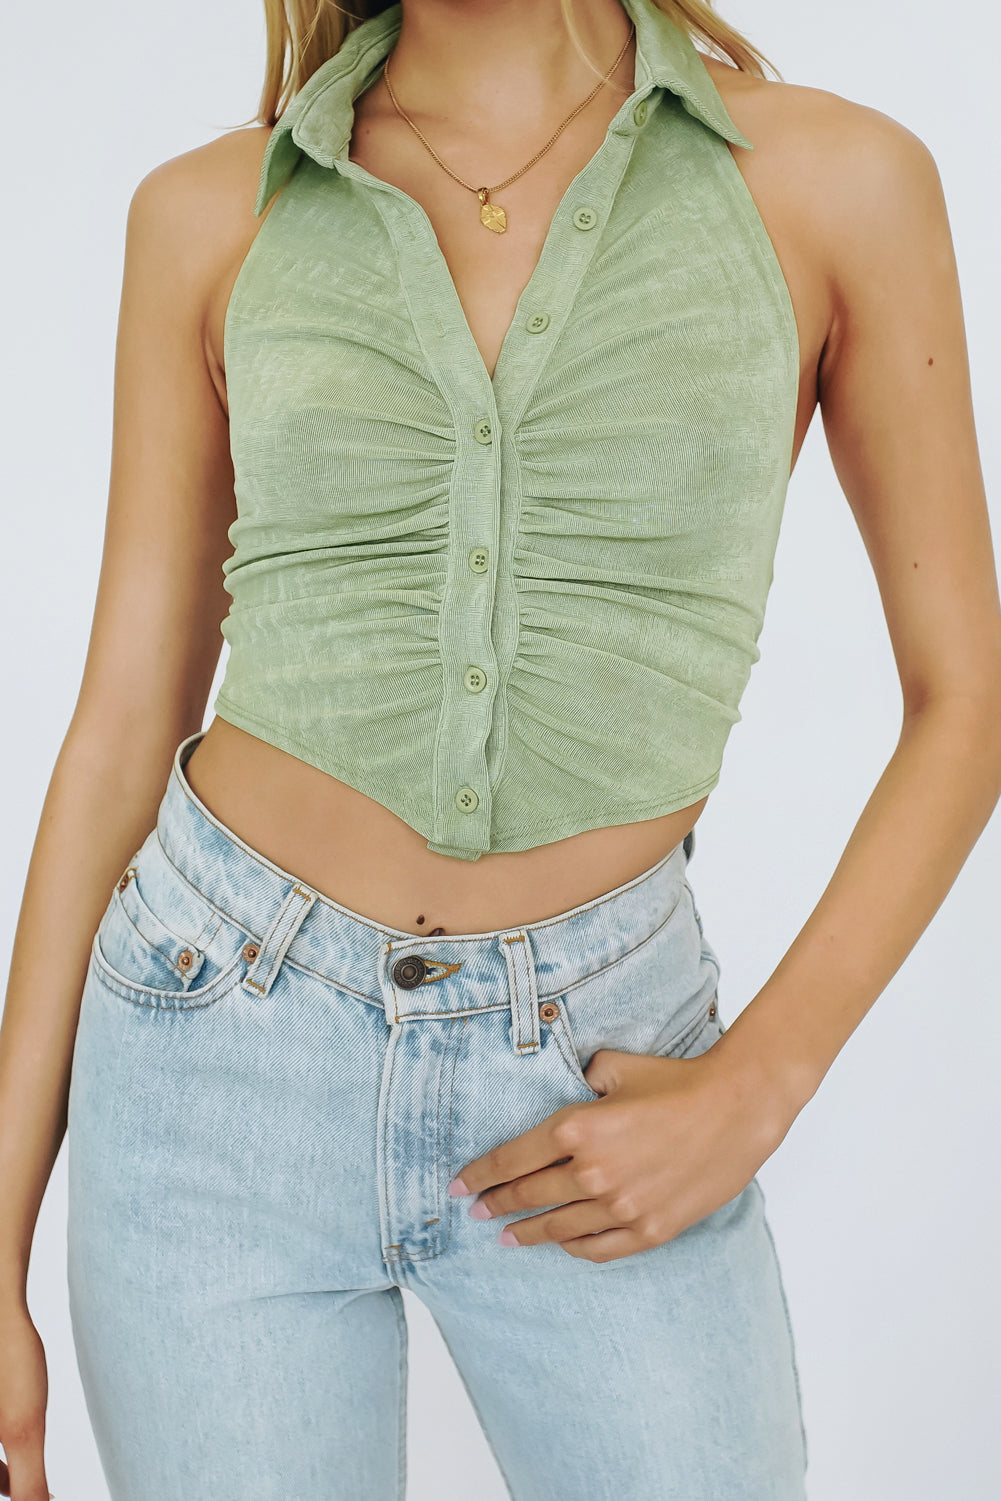 By Morning Button Front Knit Top // Sage